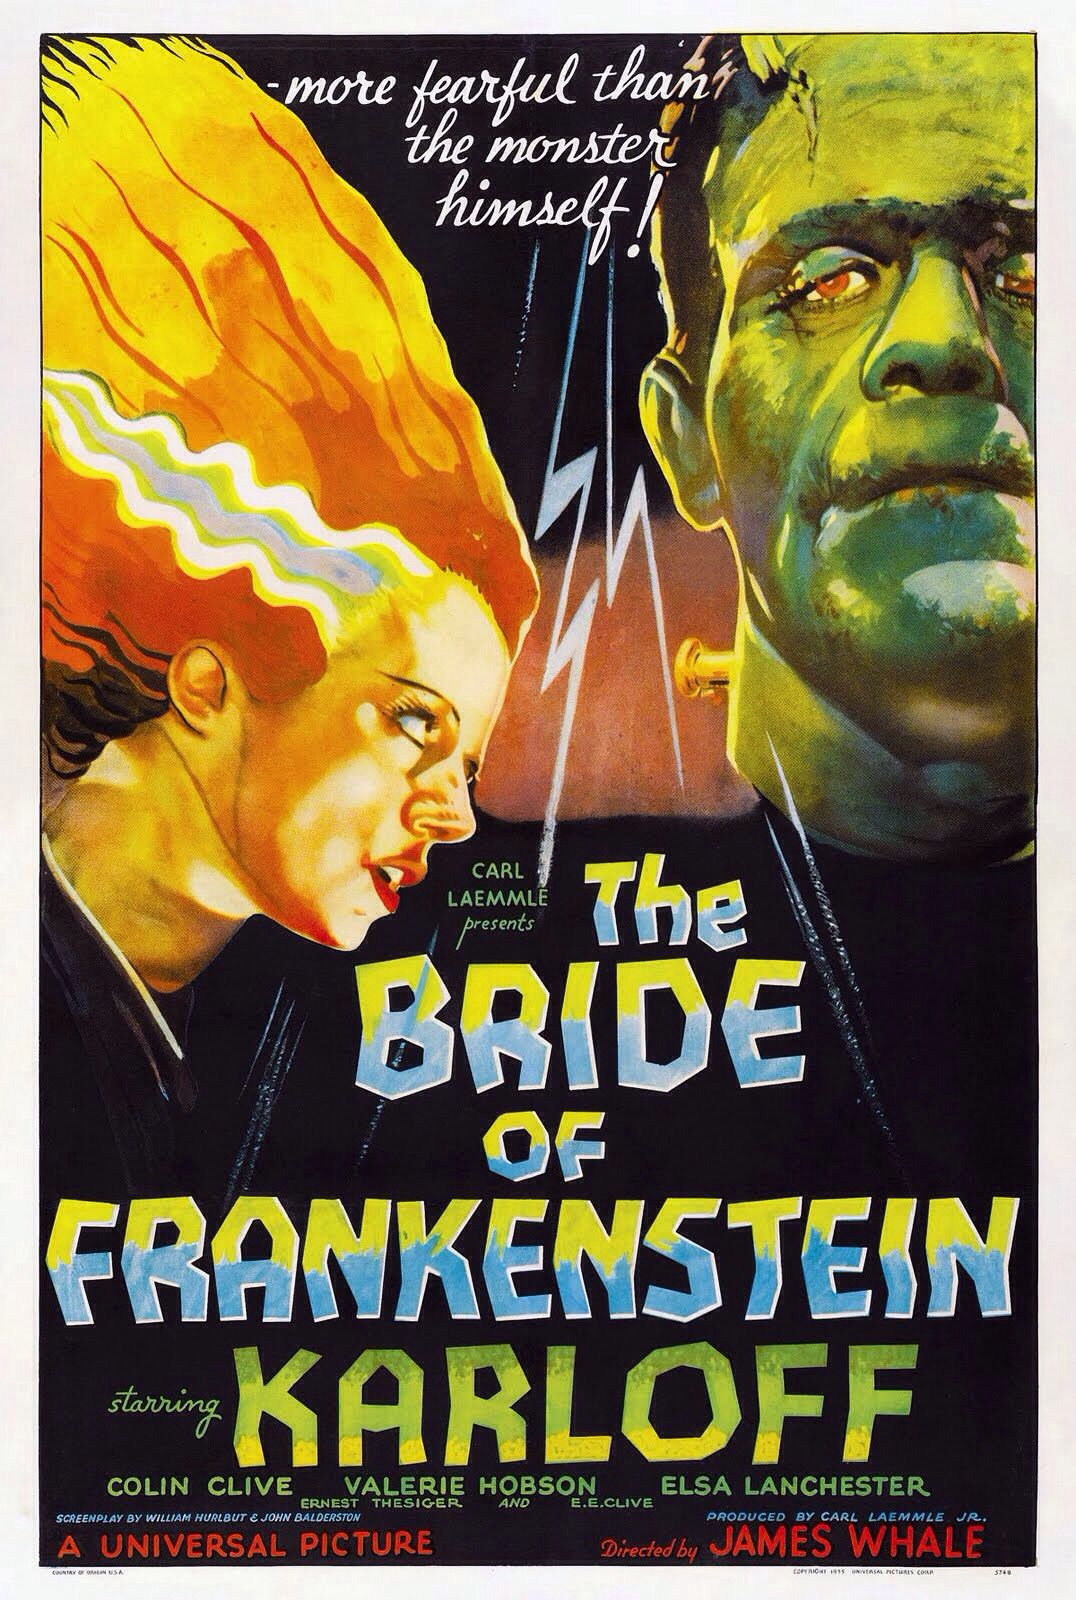 Universal Classic Horror film posters (1920s - 1950s) | I